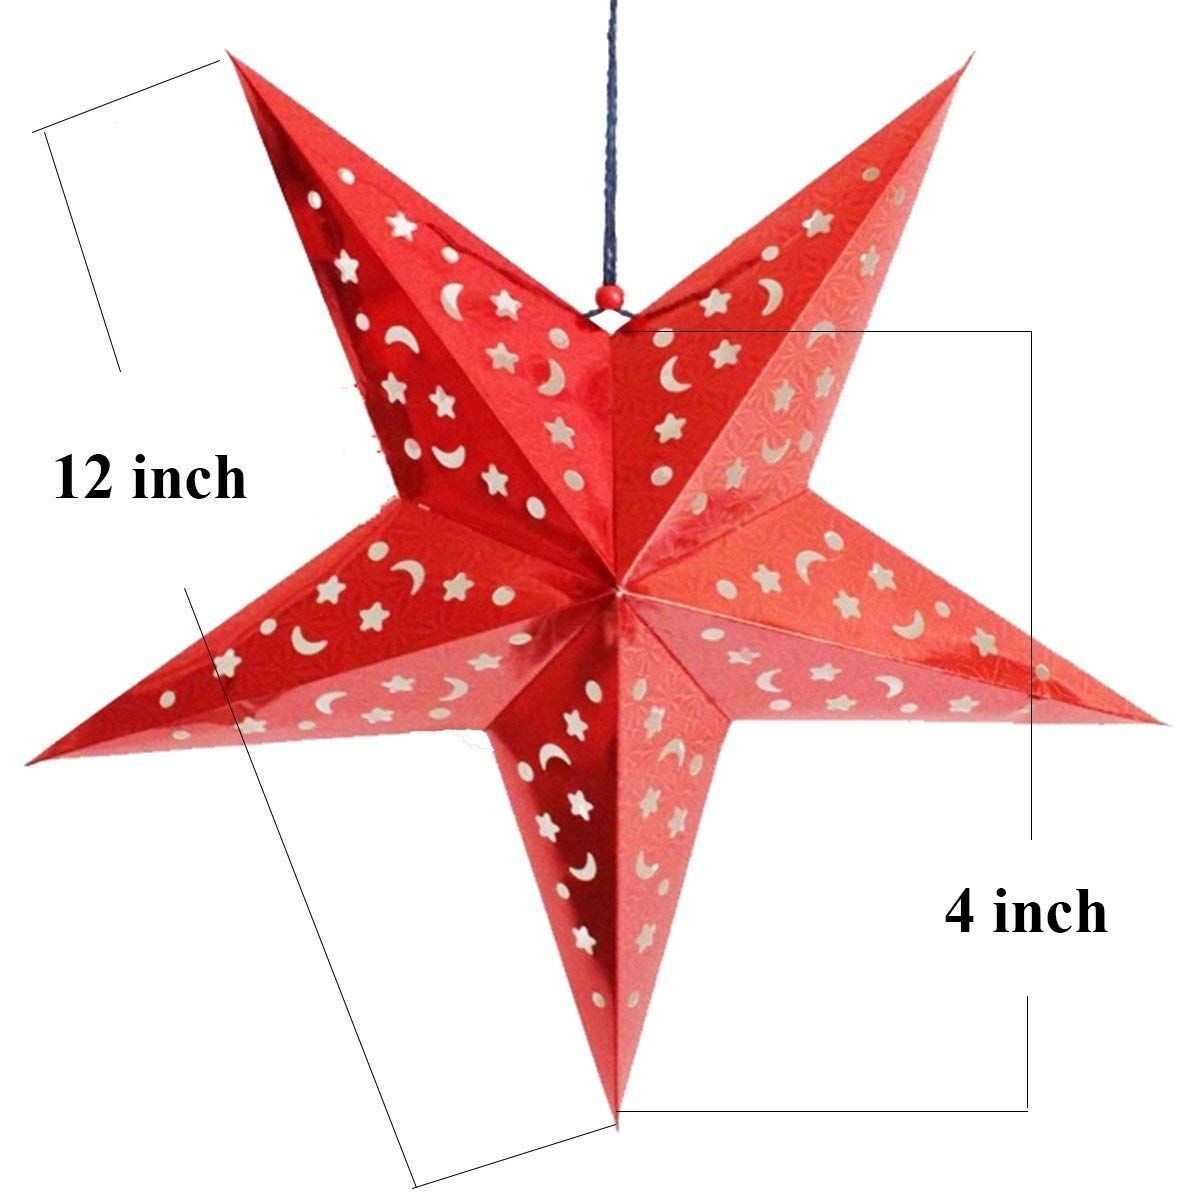 Auony Paper Star Lantern Lampshade 6 Pack 3d Paper Star Pentagram Lampshade For Christmas Xmas We Paper Star Lanterns 3d Paper Star Christmas Decorations Cheap